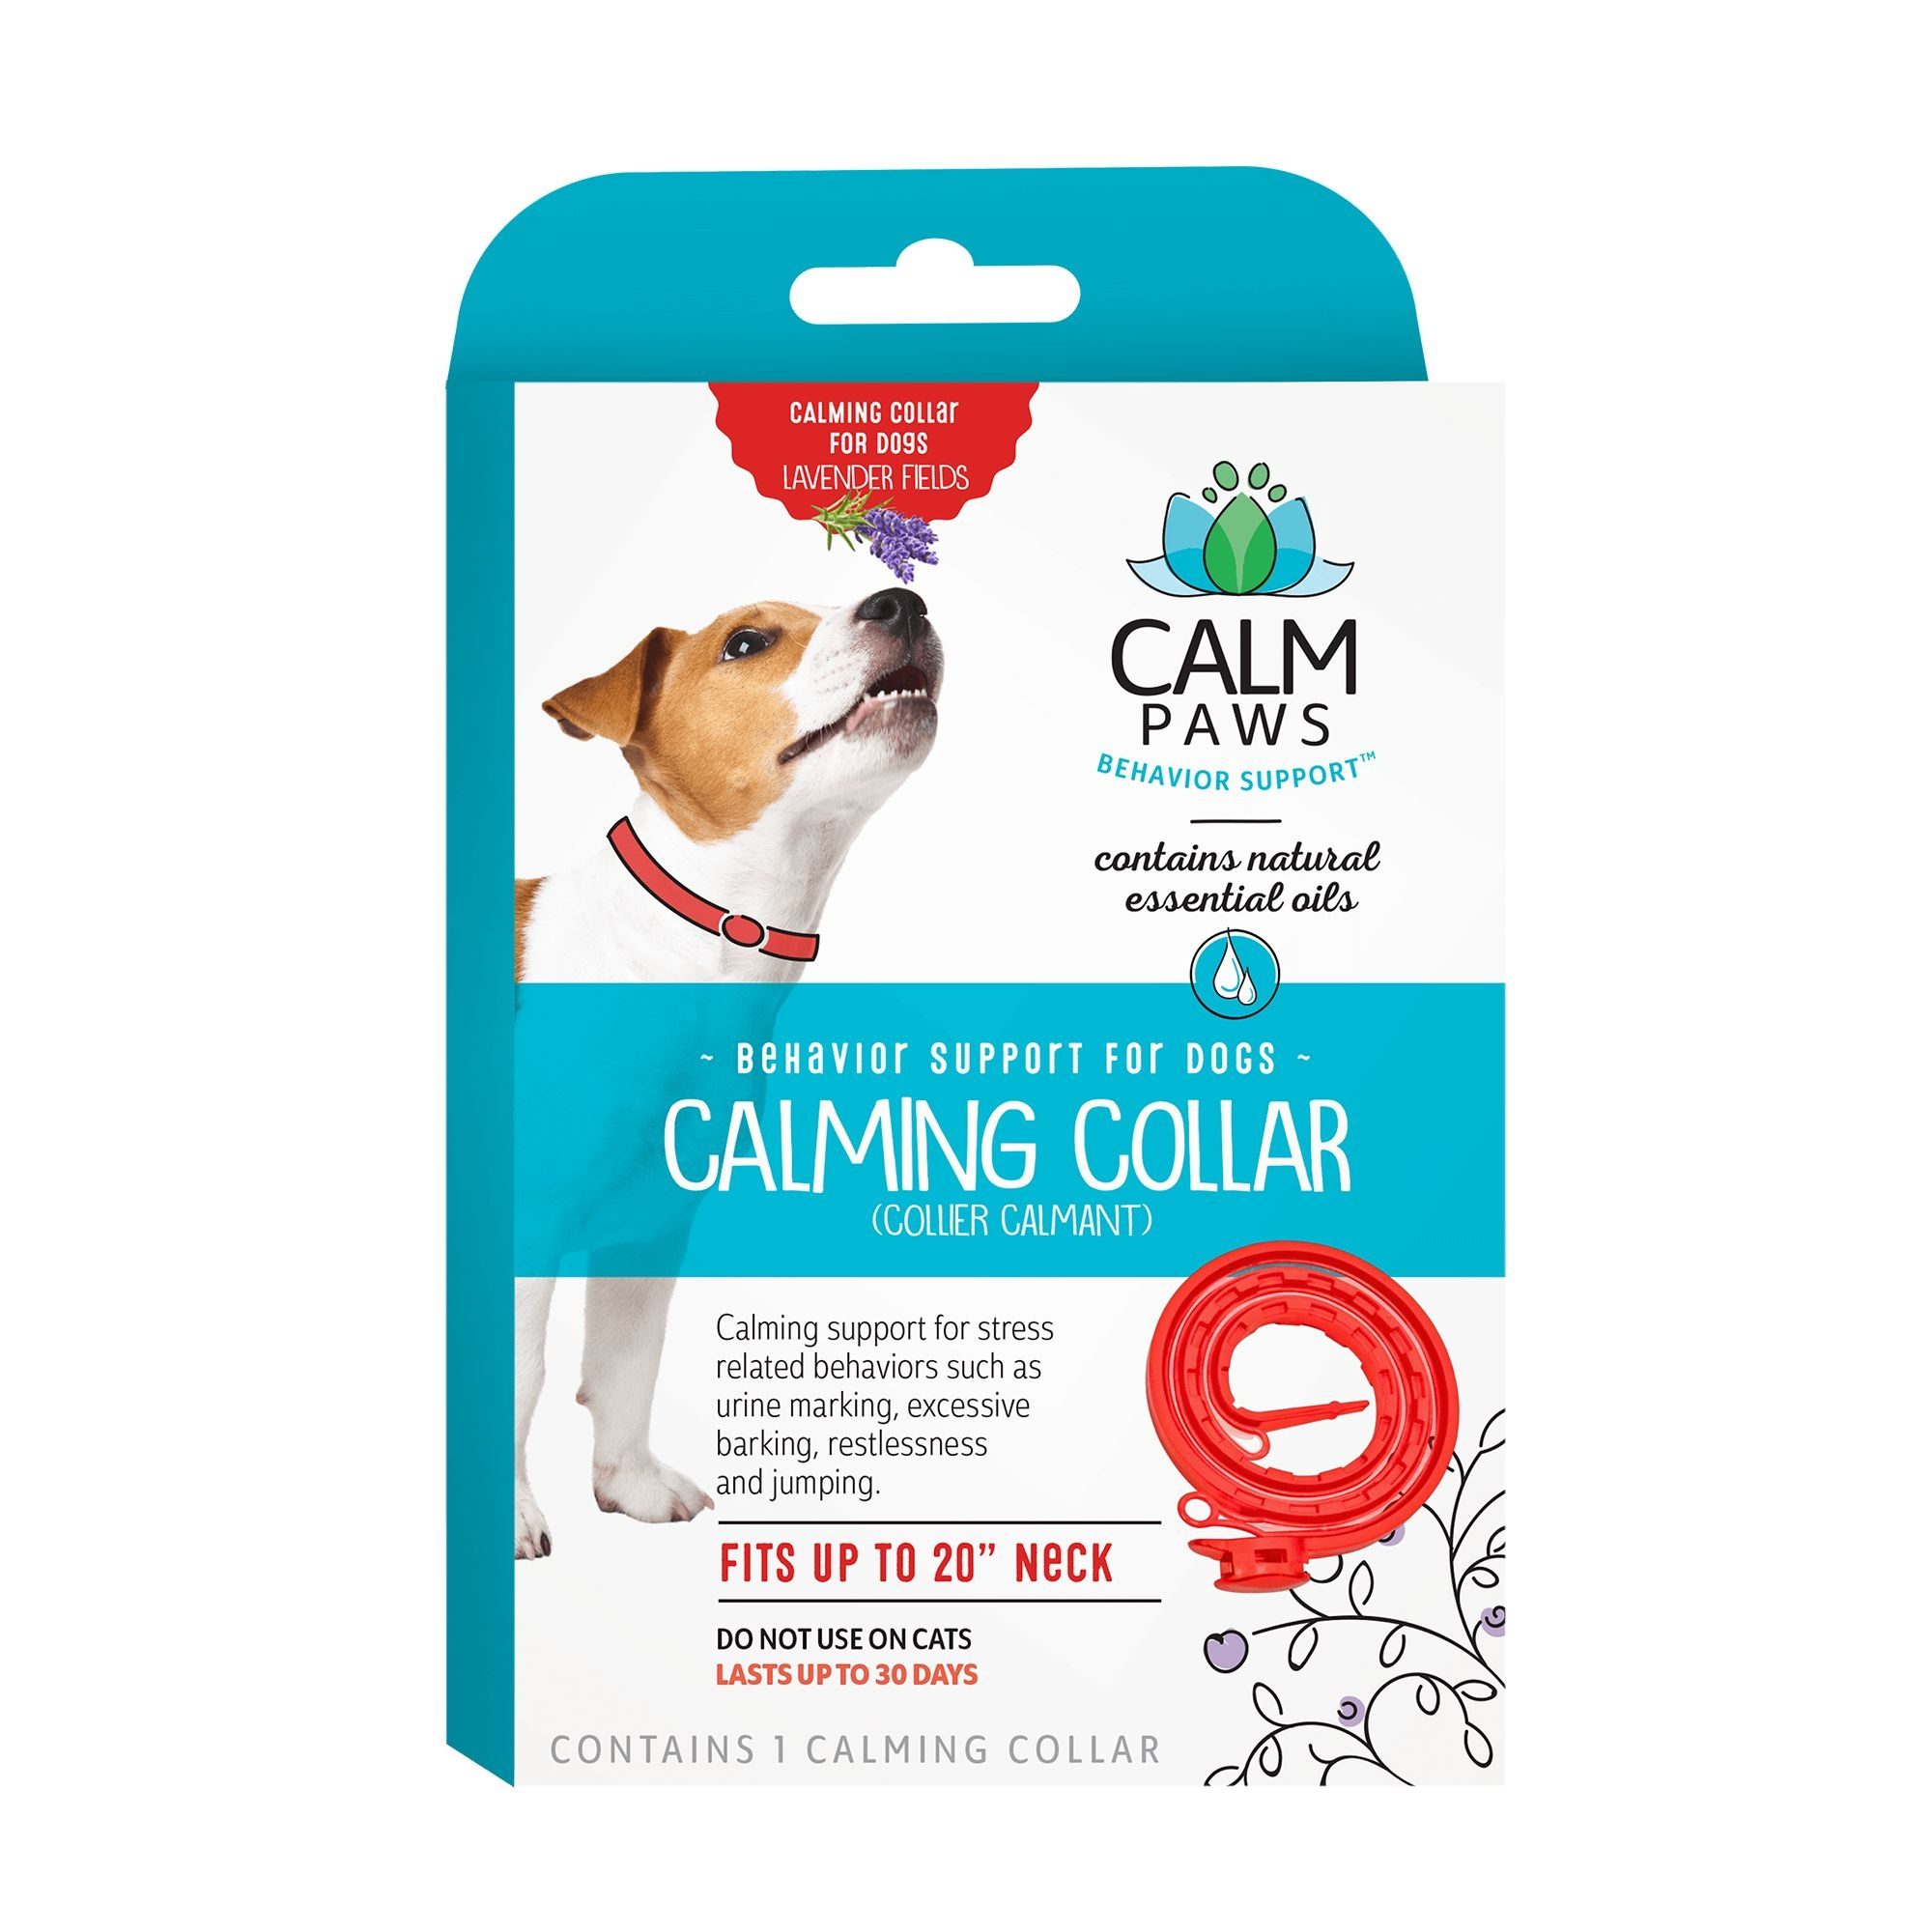 21st Centry Animal Health Care Calm Paws Behavior Support Calming Dog Collar